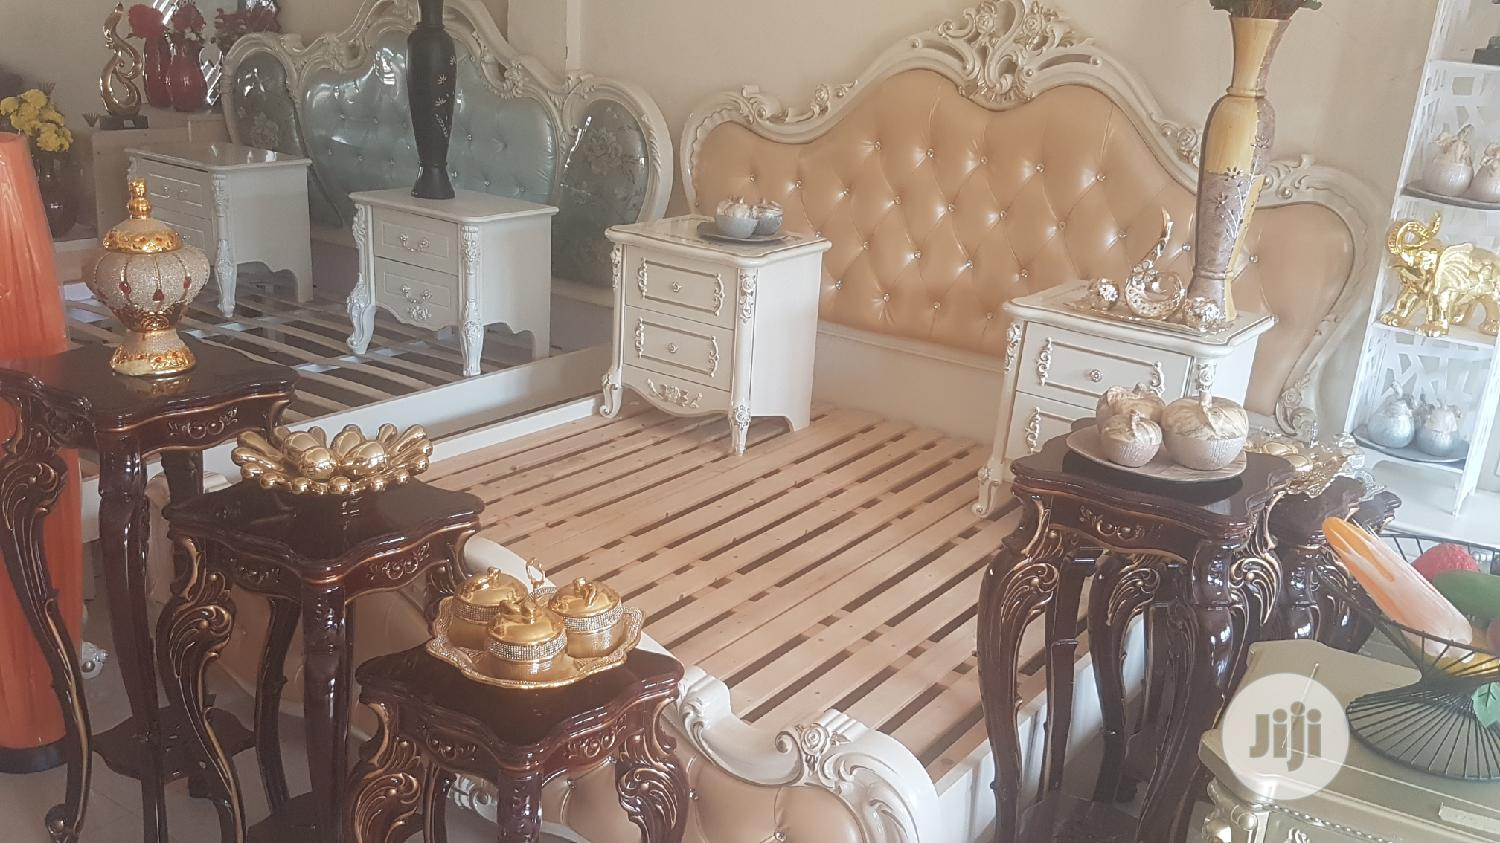 New Imported Royal Bed and Mattress | Furniture for sale in Wuse 2, Abuja (FCT) State, Nigeria